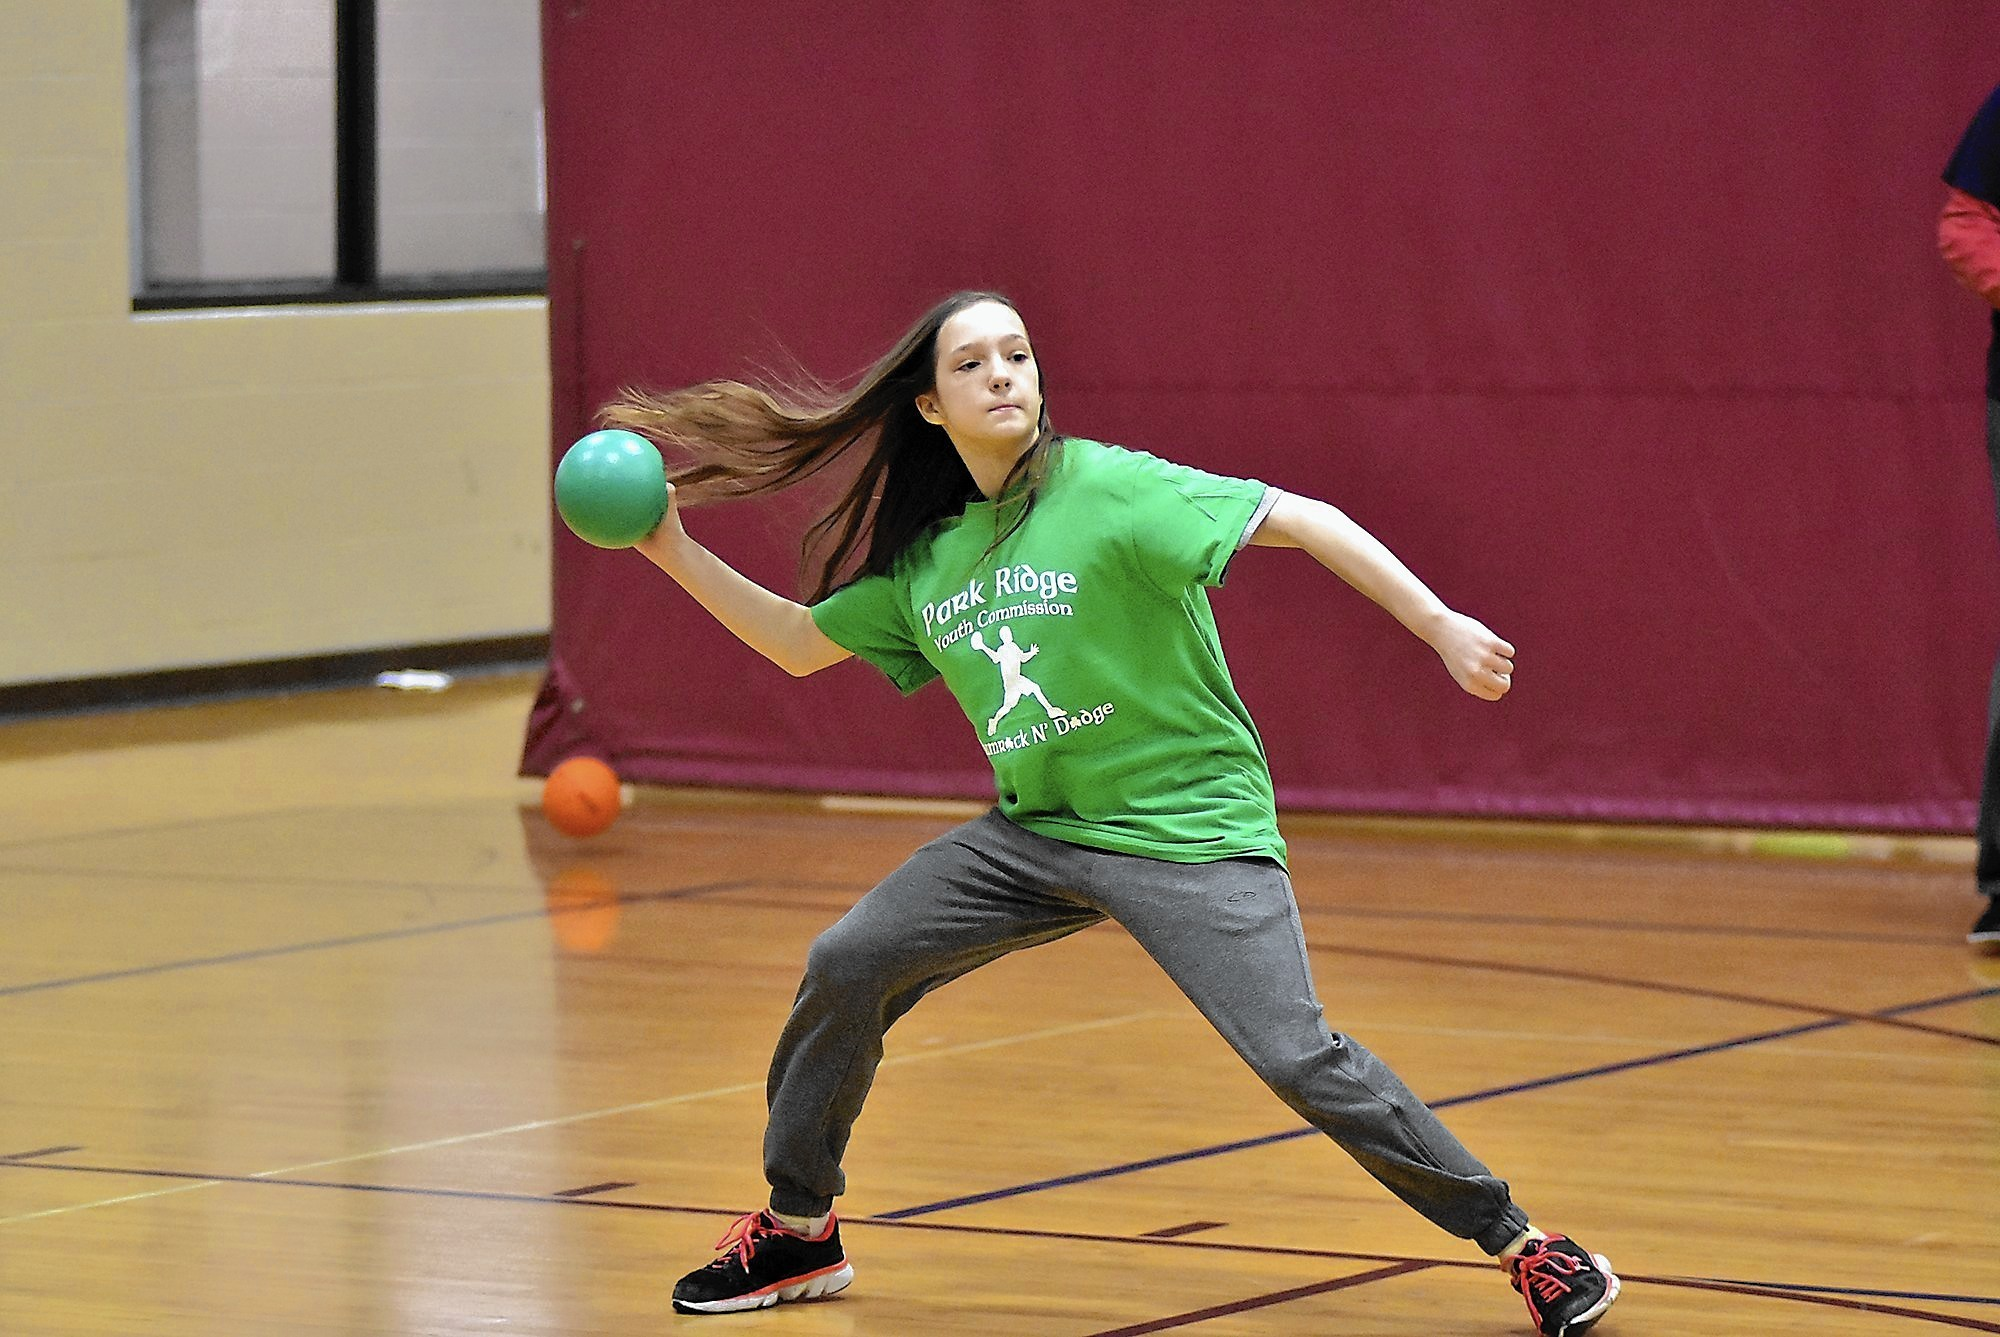 Dodgeball delight: Kids compete in annual tournament in Park Ridge - Park Ridge Herald-Advocate